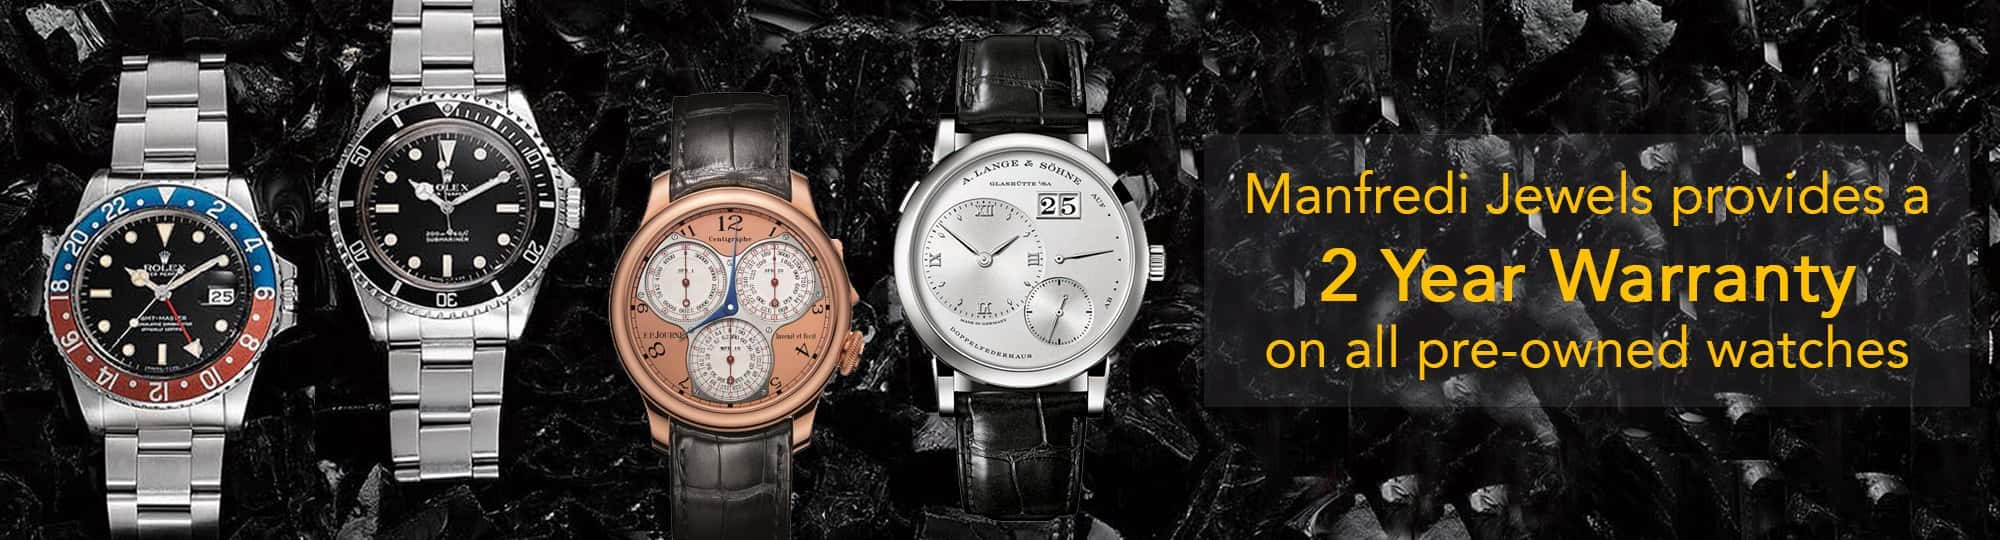 manfredi jewels - 2 year warranty certified preowned watches